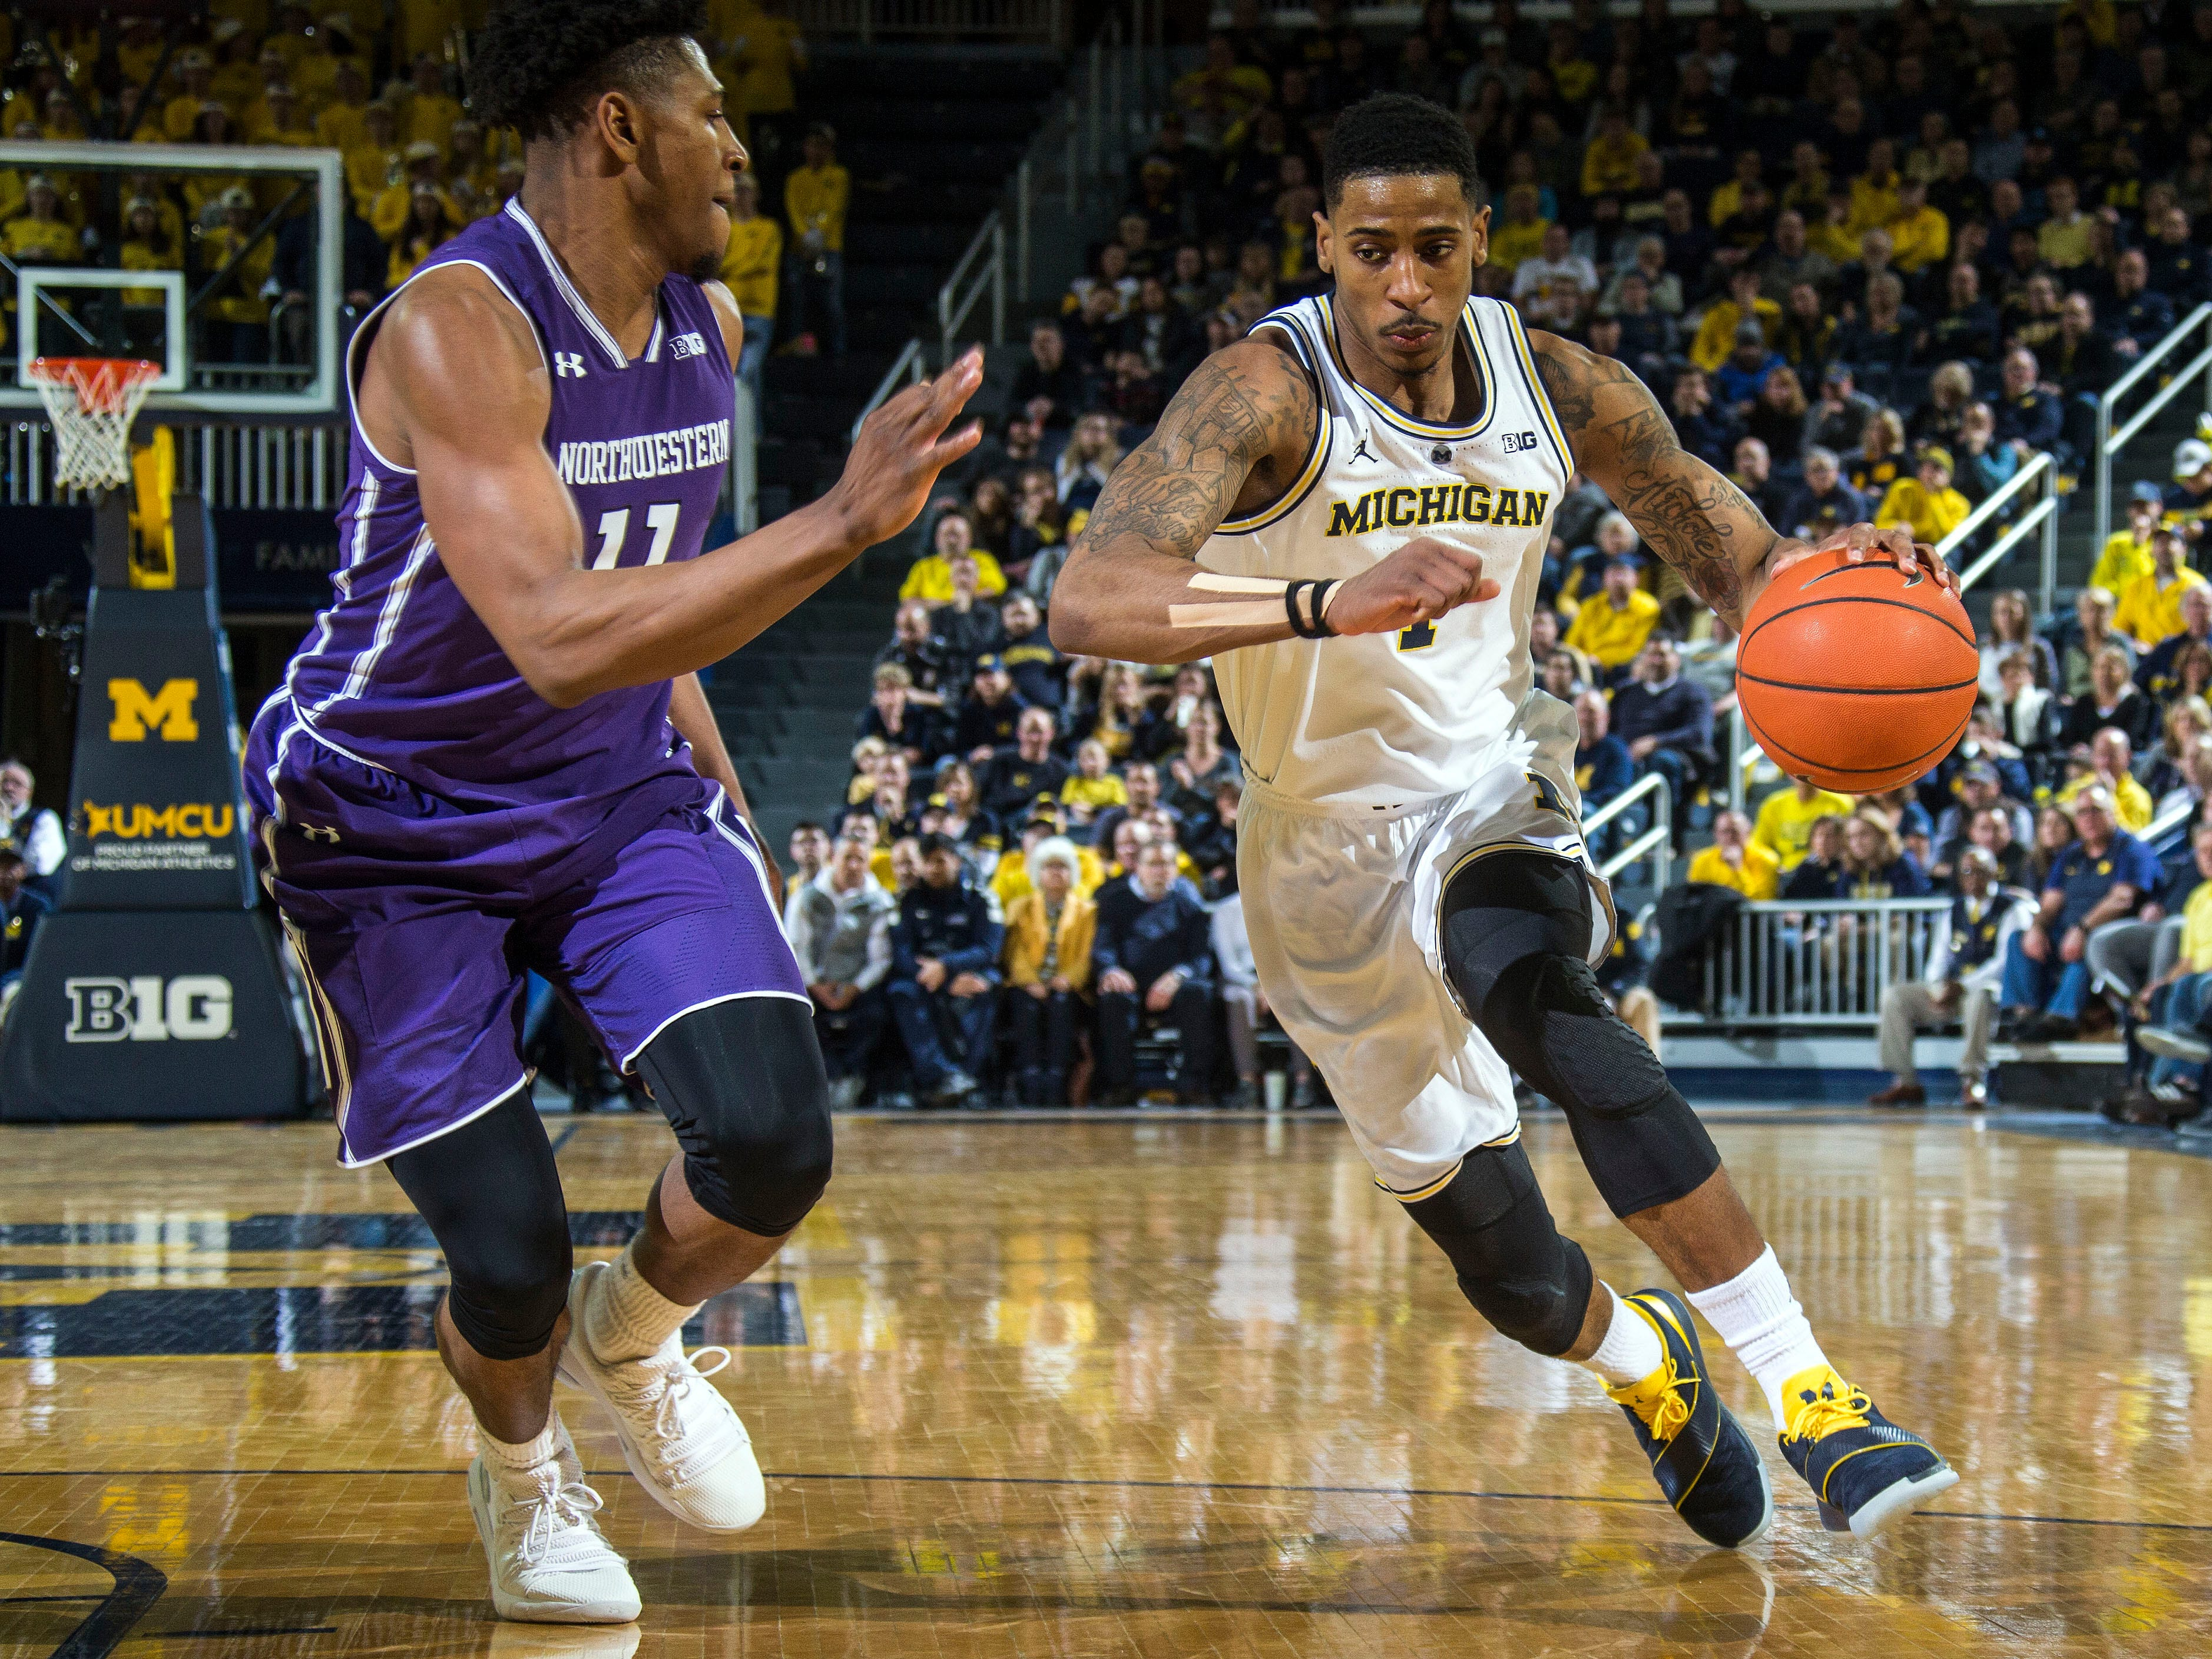 Northwestern guard Anthony Gaines (11) defends Michigan guard Charles Matthews, right, in the second half.